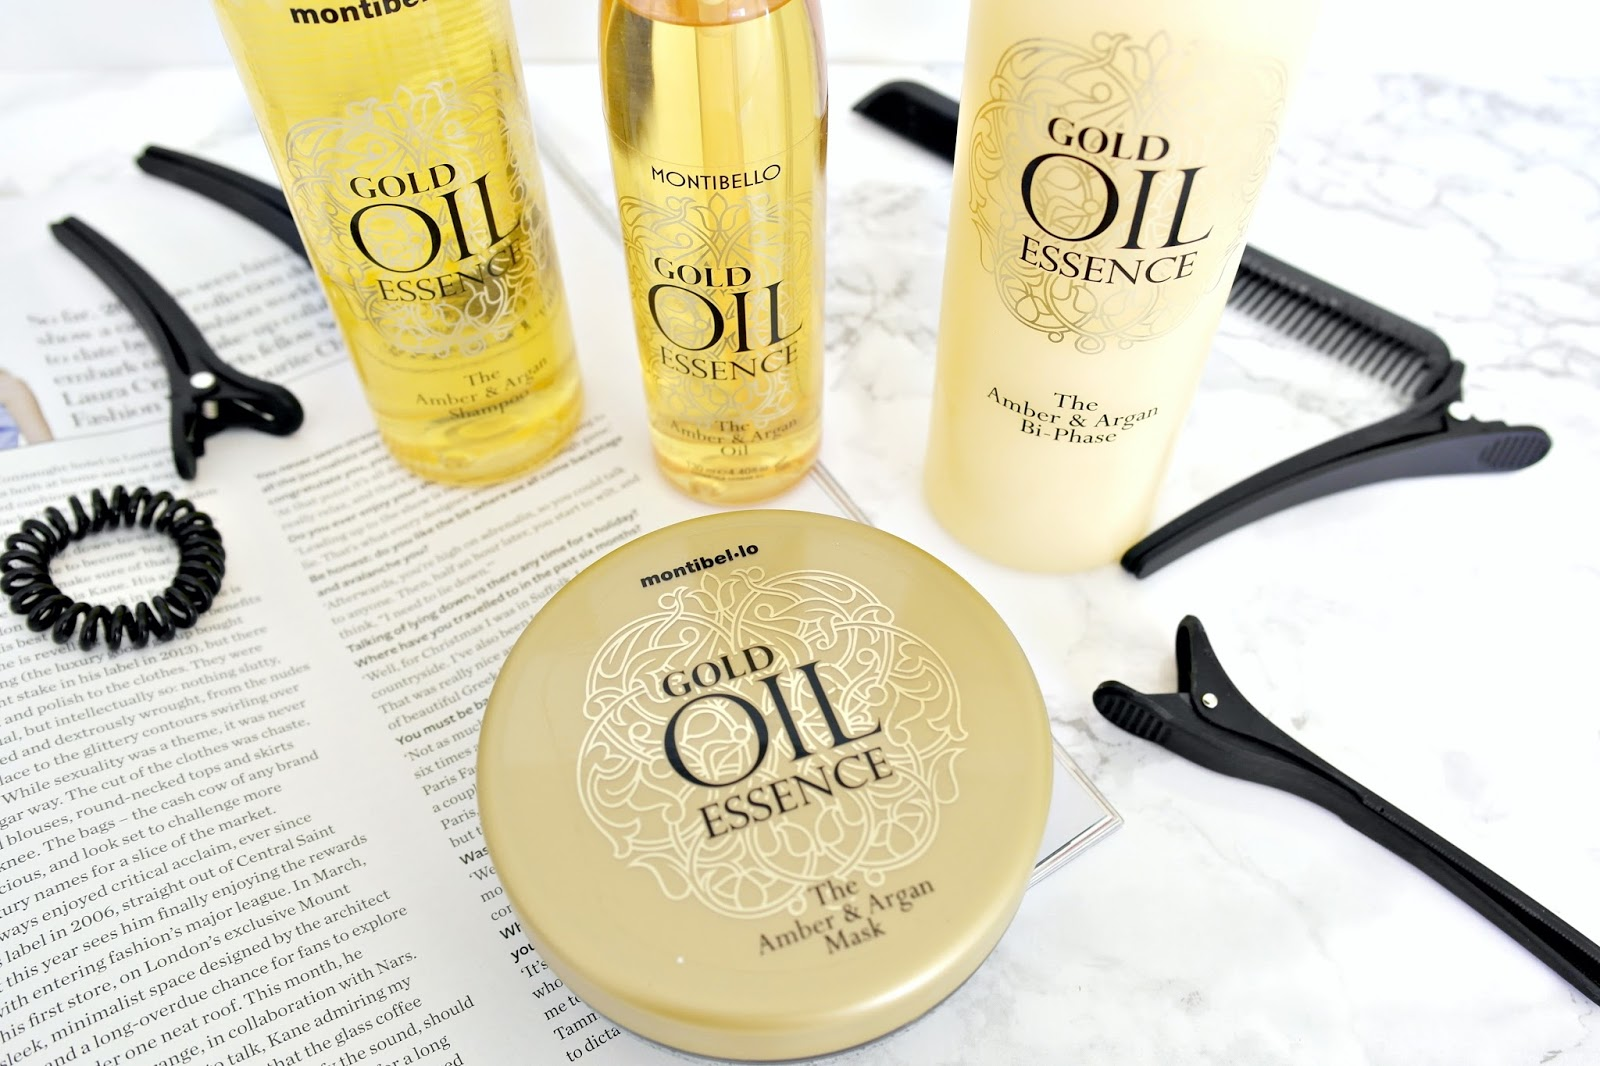 Montibello Golden Oil Essence Hair Range